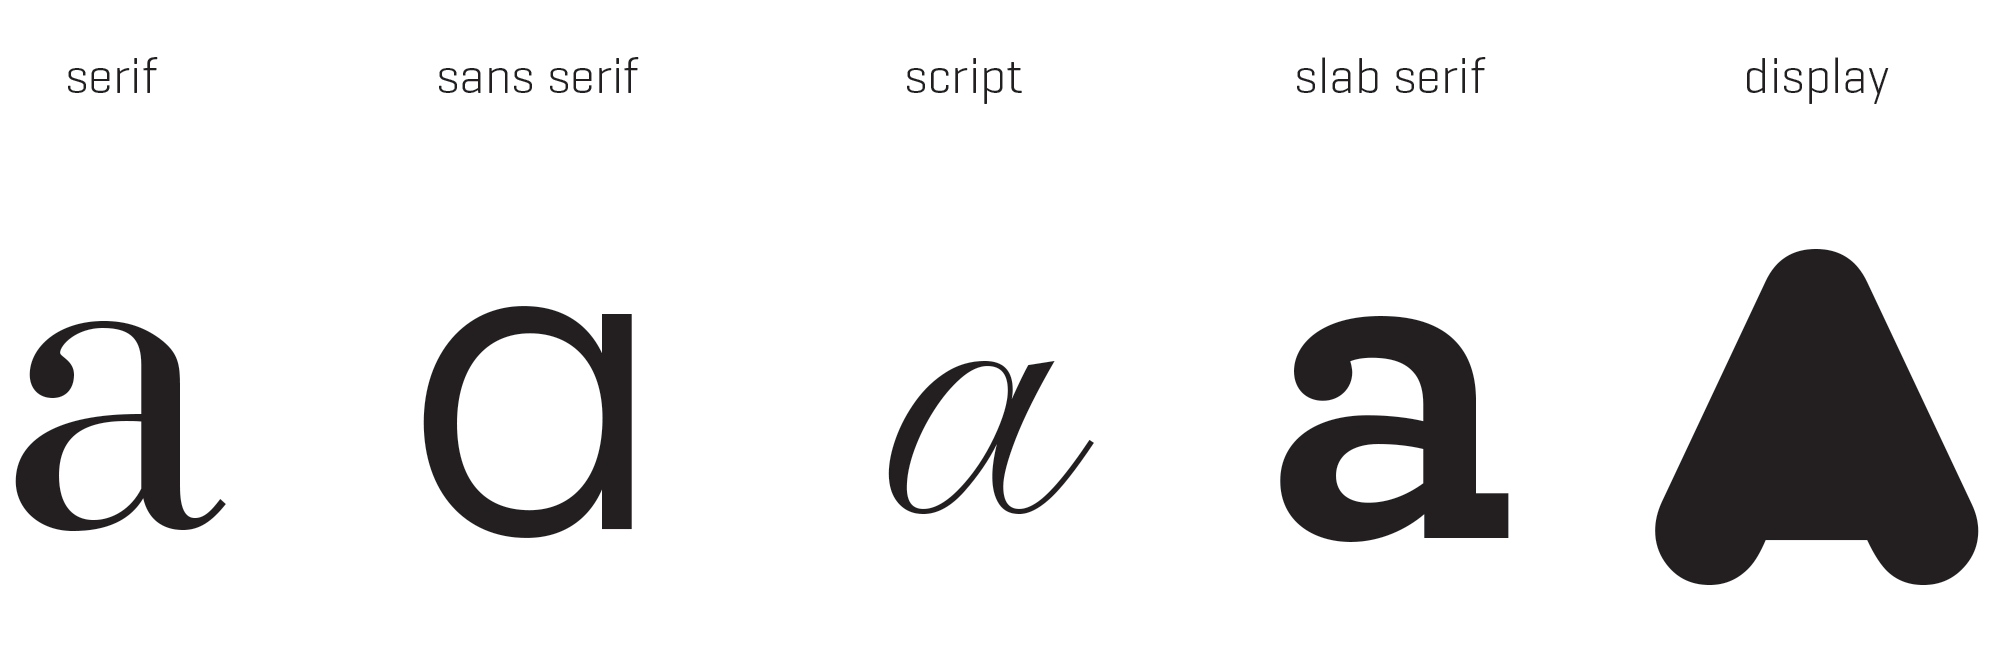 examples of different styles of typefaces